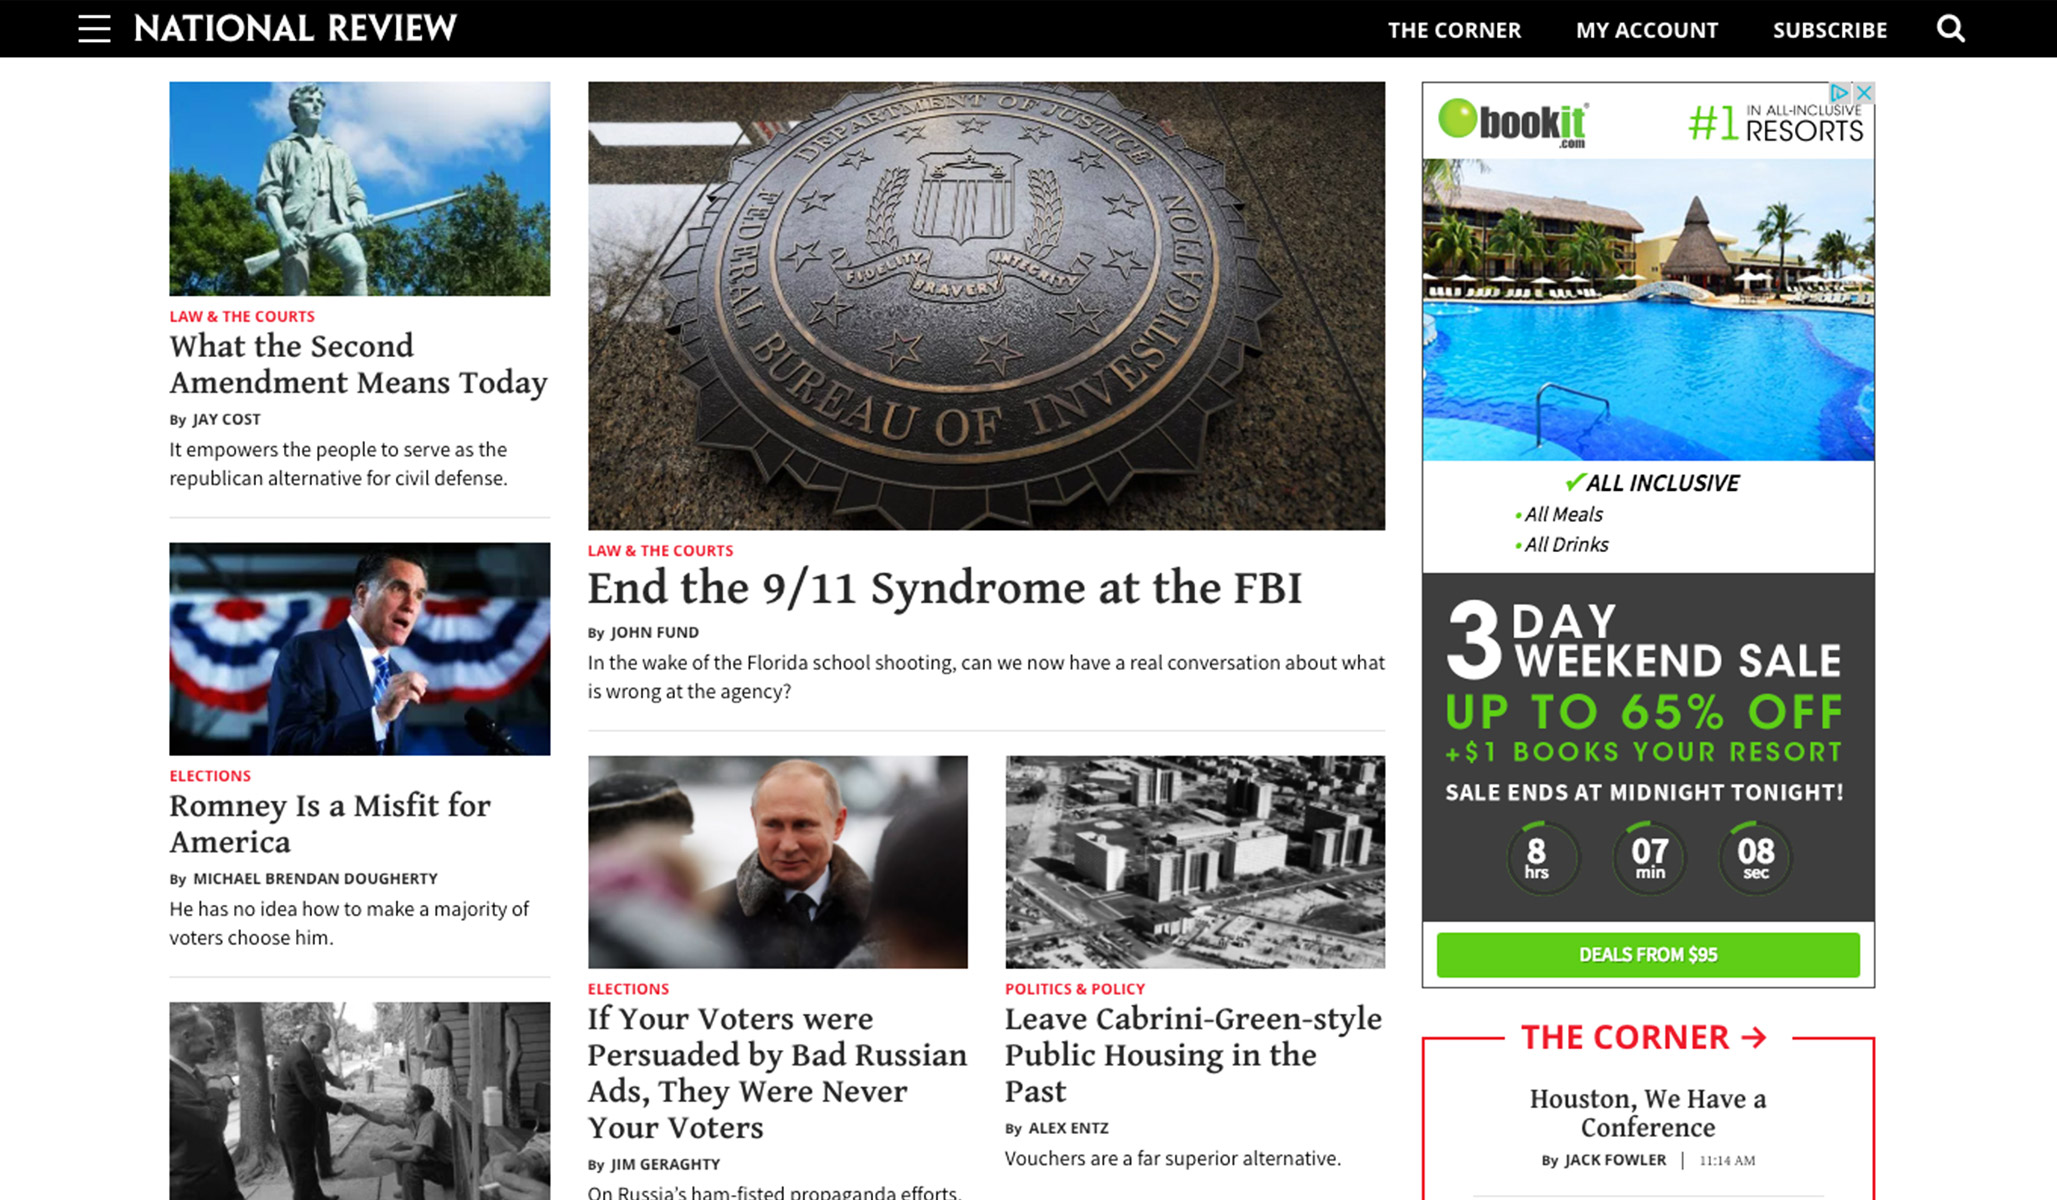 National Review Redesign Launch: Message from Publisher